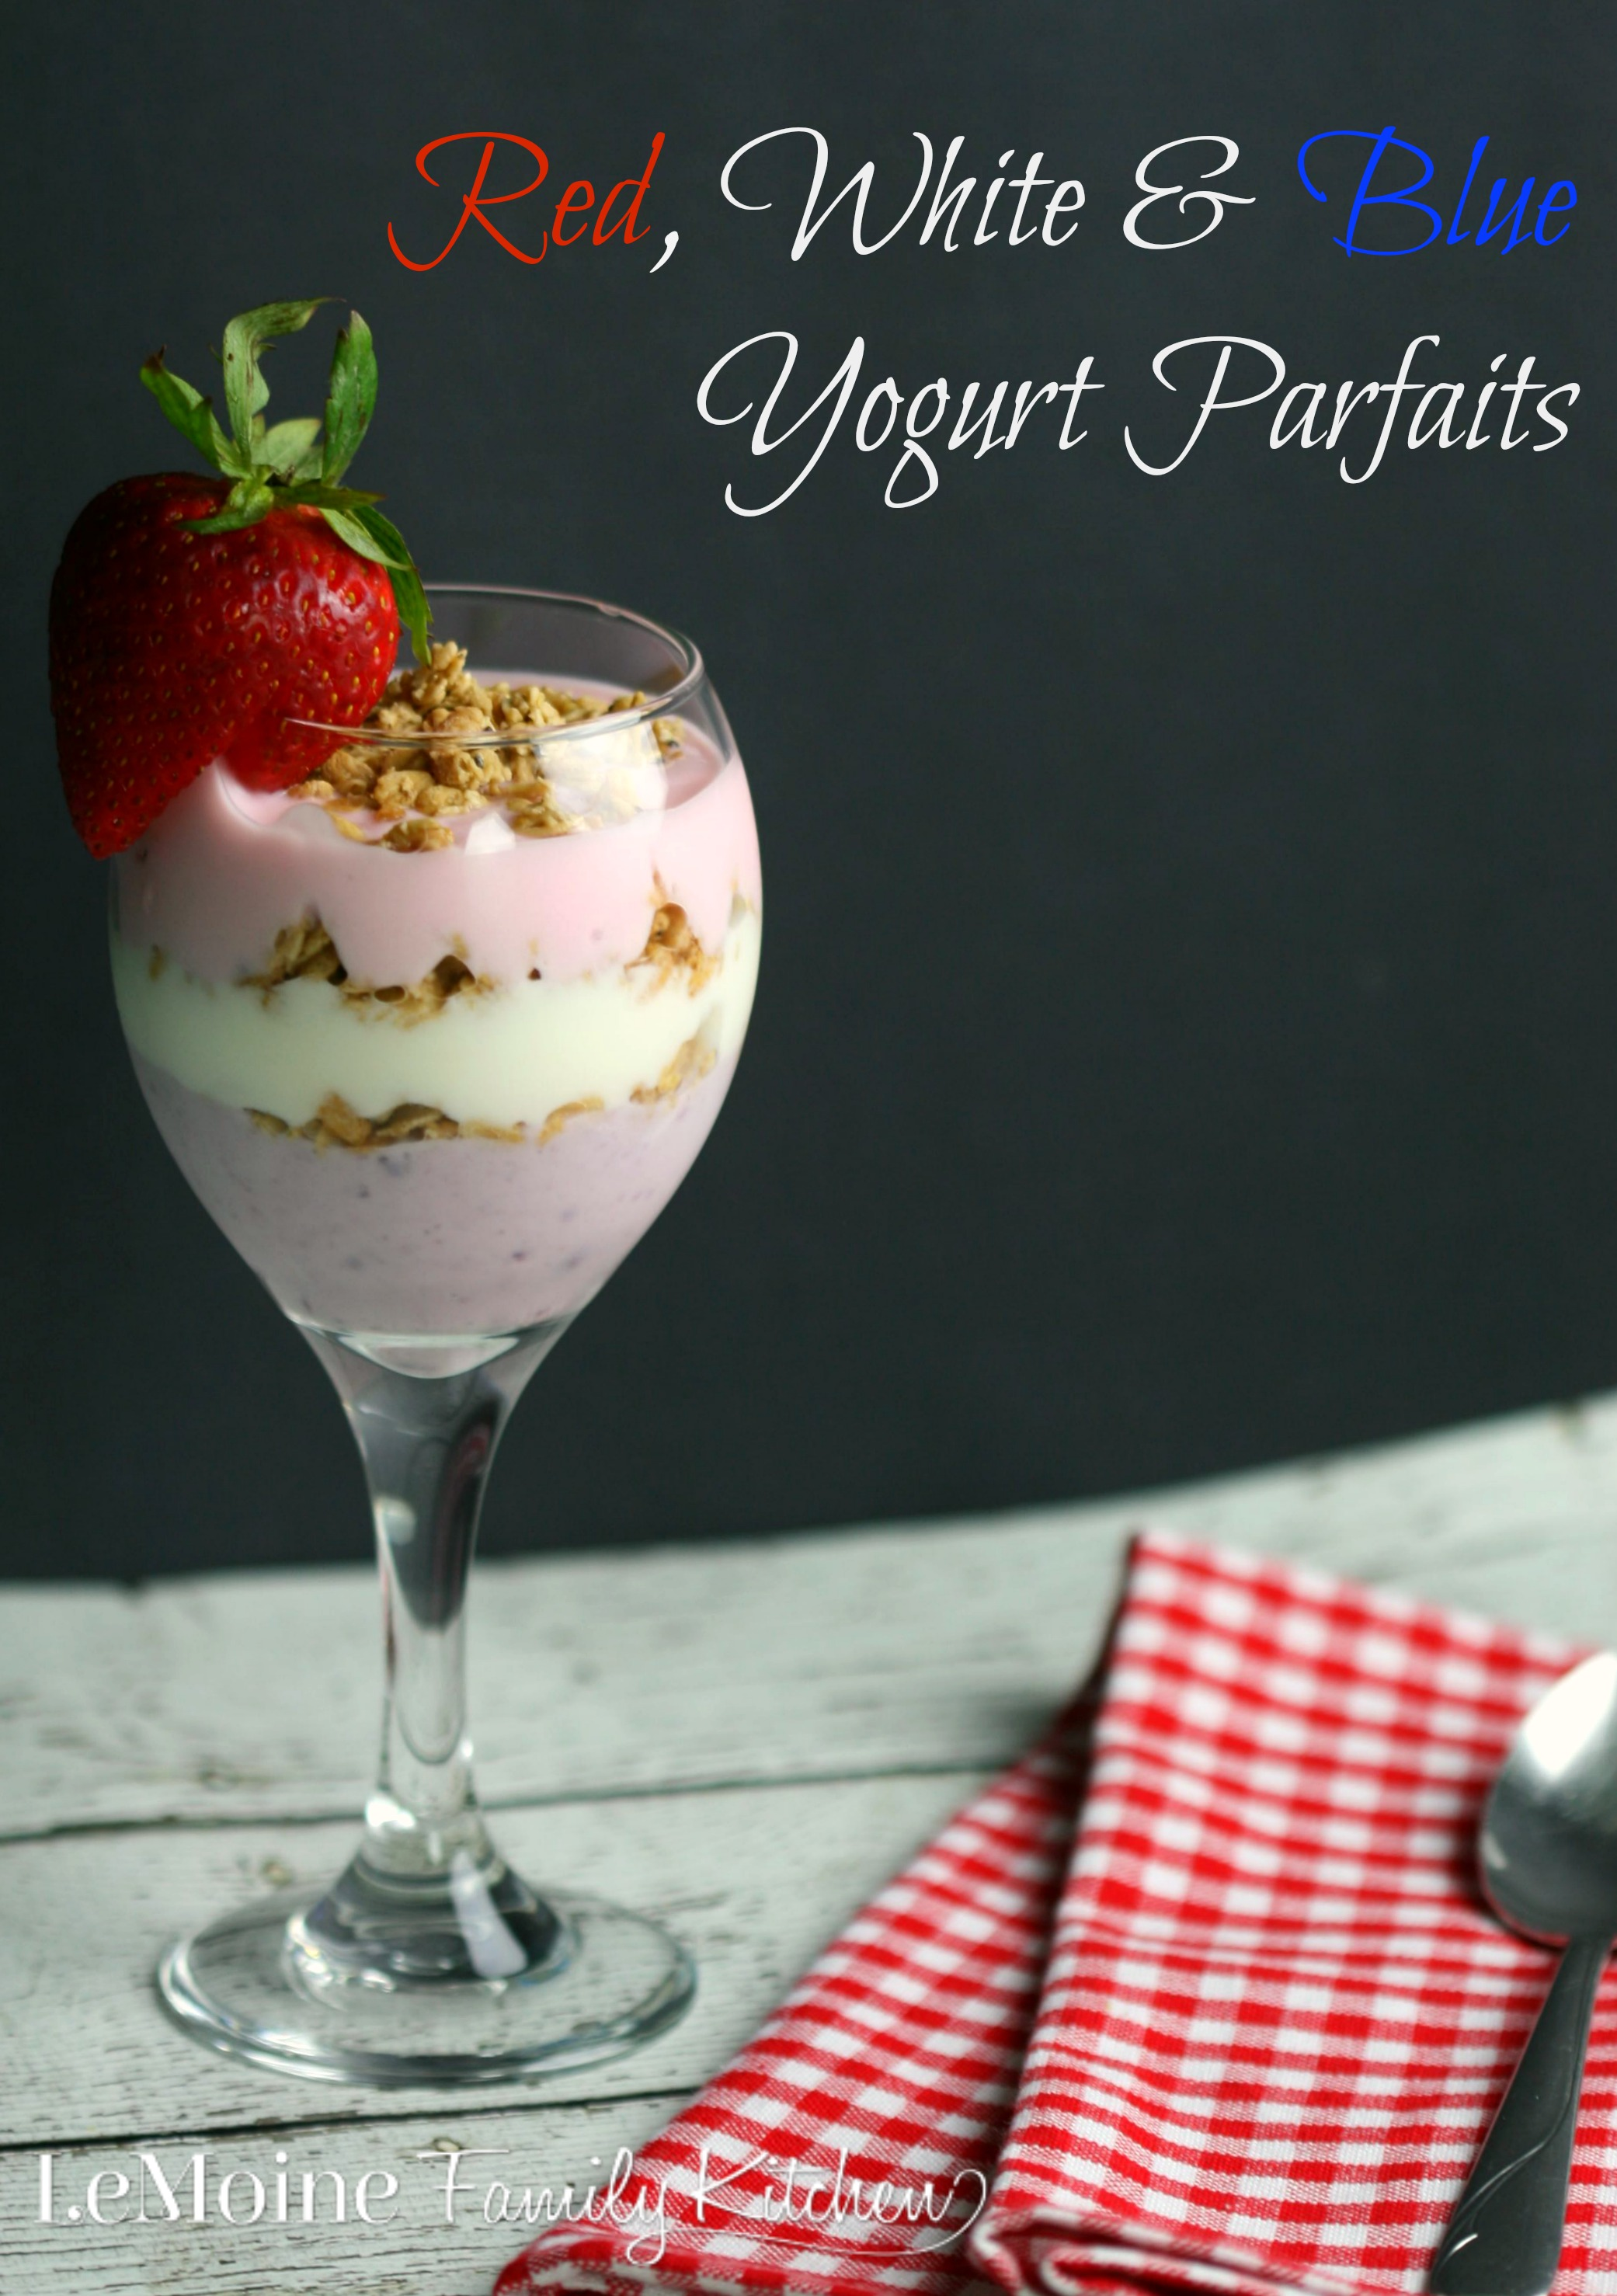 Red, White & Blue Yogurt Parfaits